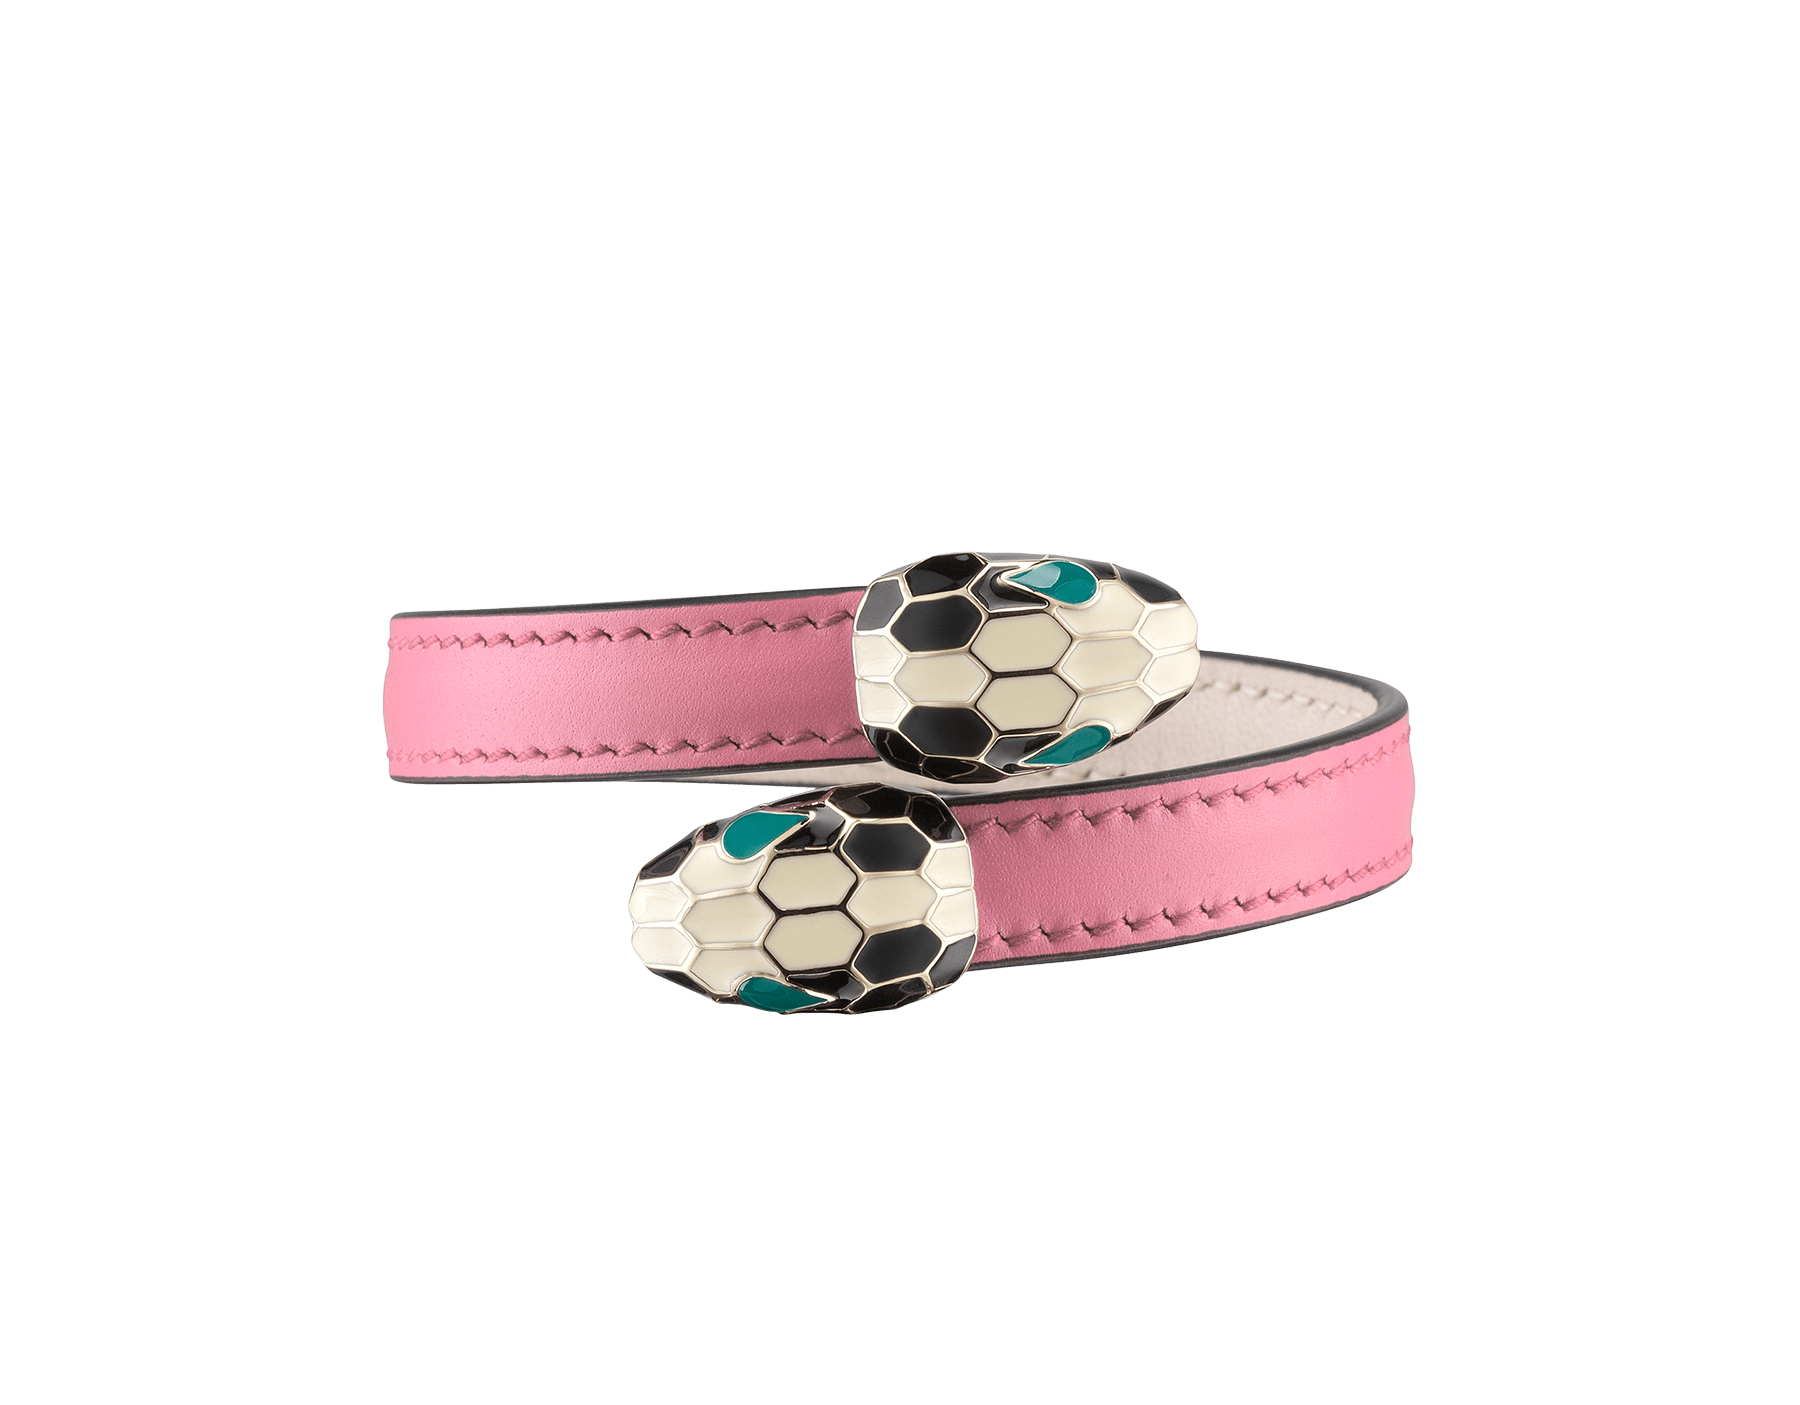 Serpenti Forever soft bangle bracelet in candy quartz calf leather, with brass light gold plated hardware. Iconic contraire snakehead décor in black and white enamel, with green enamel eyes SerpSoftContr-CL-CQ image 1